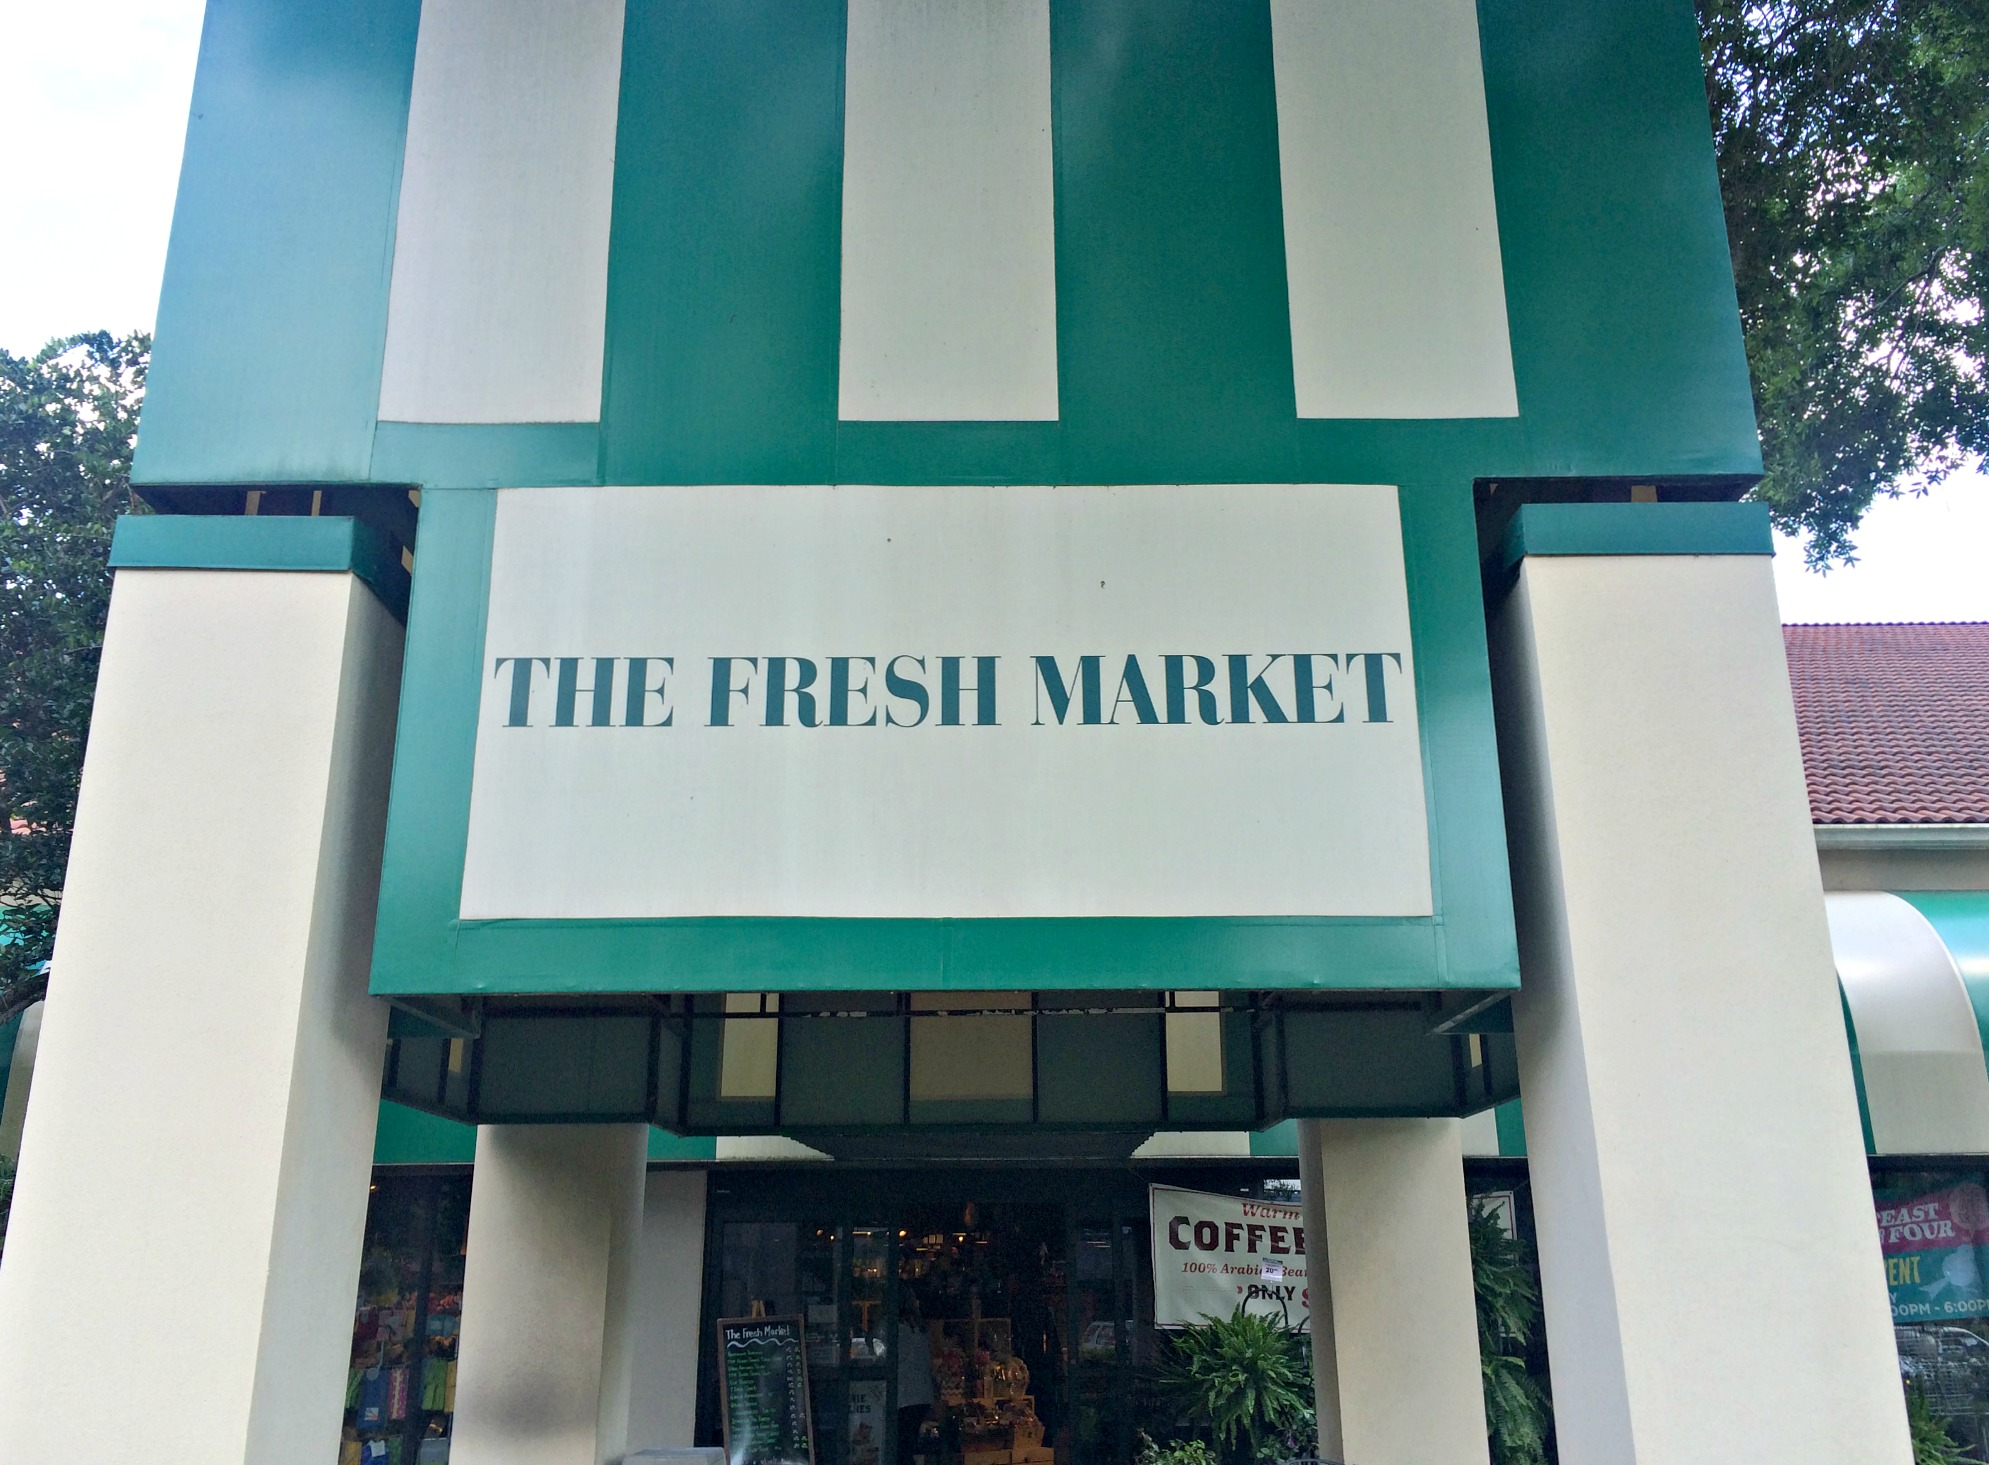 The Fresh Market outside